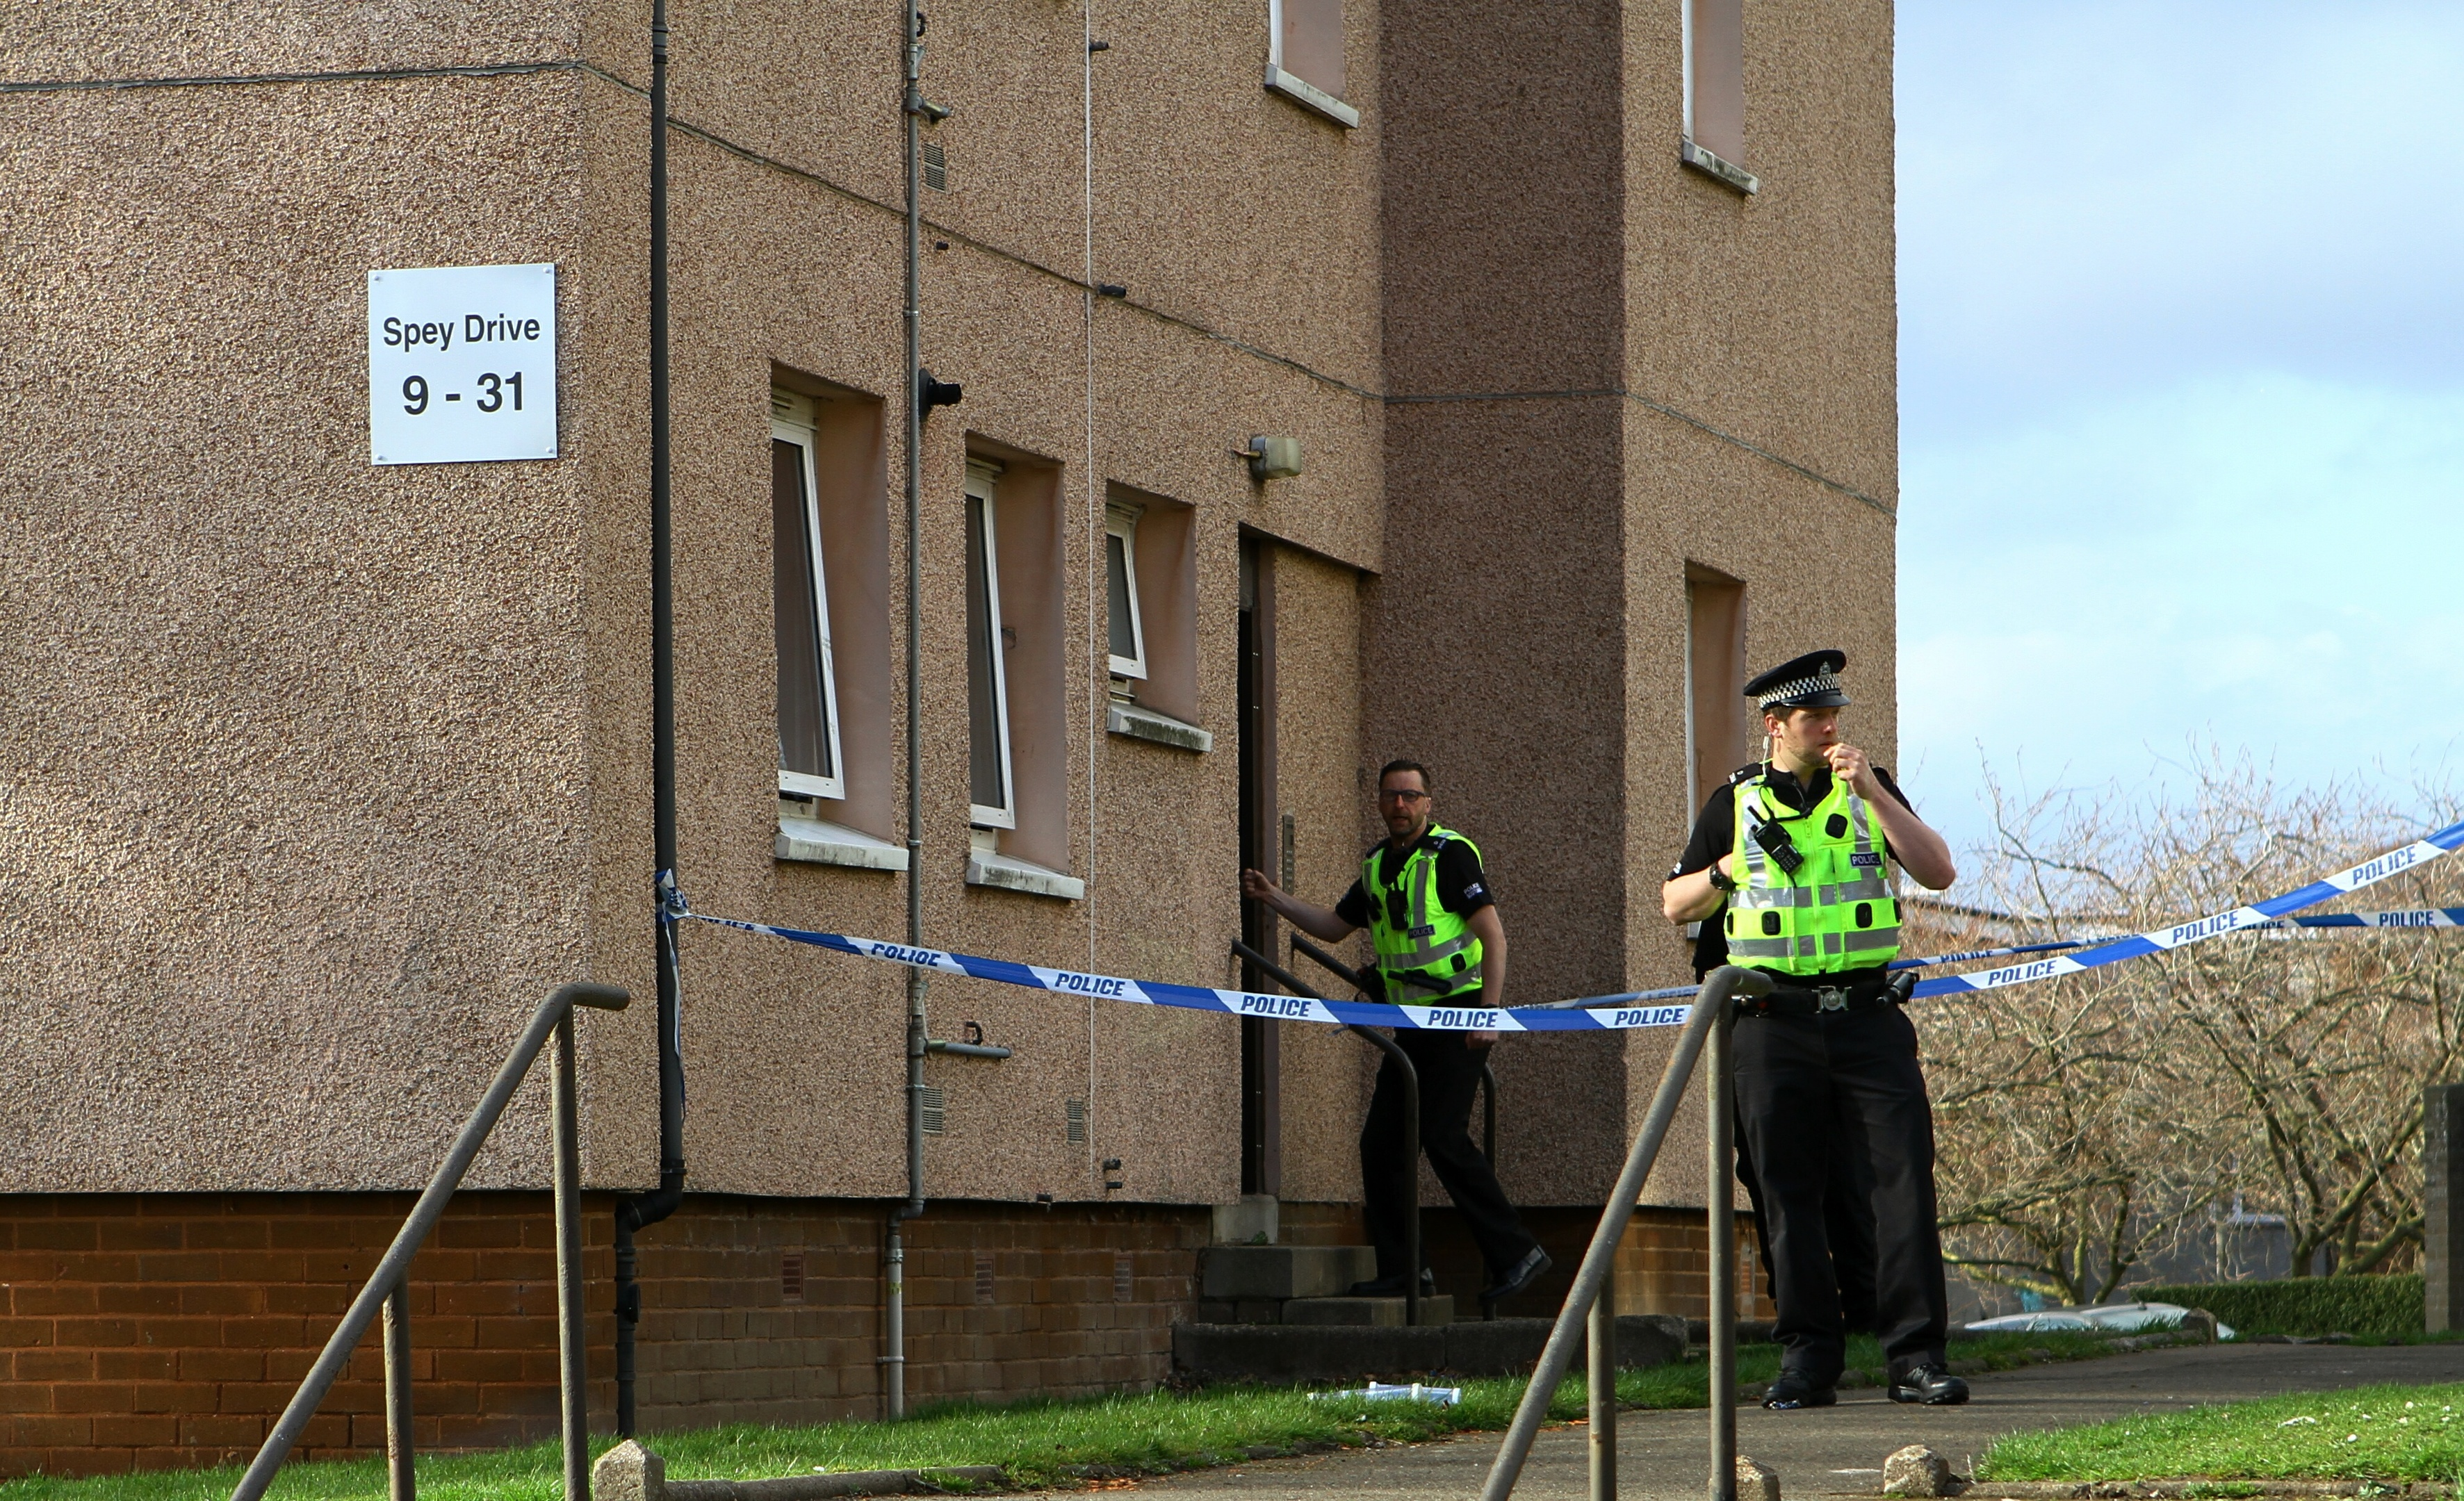 Police at the scene of the incident on Spey Drive.